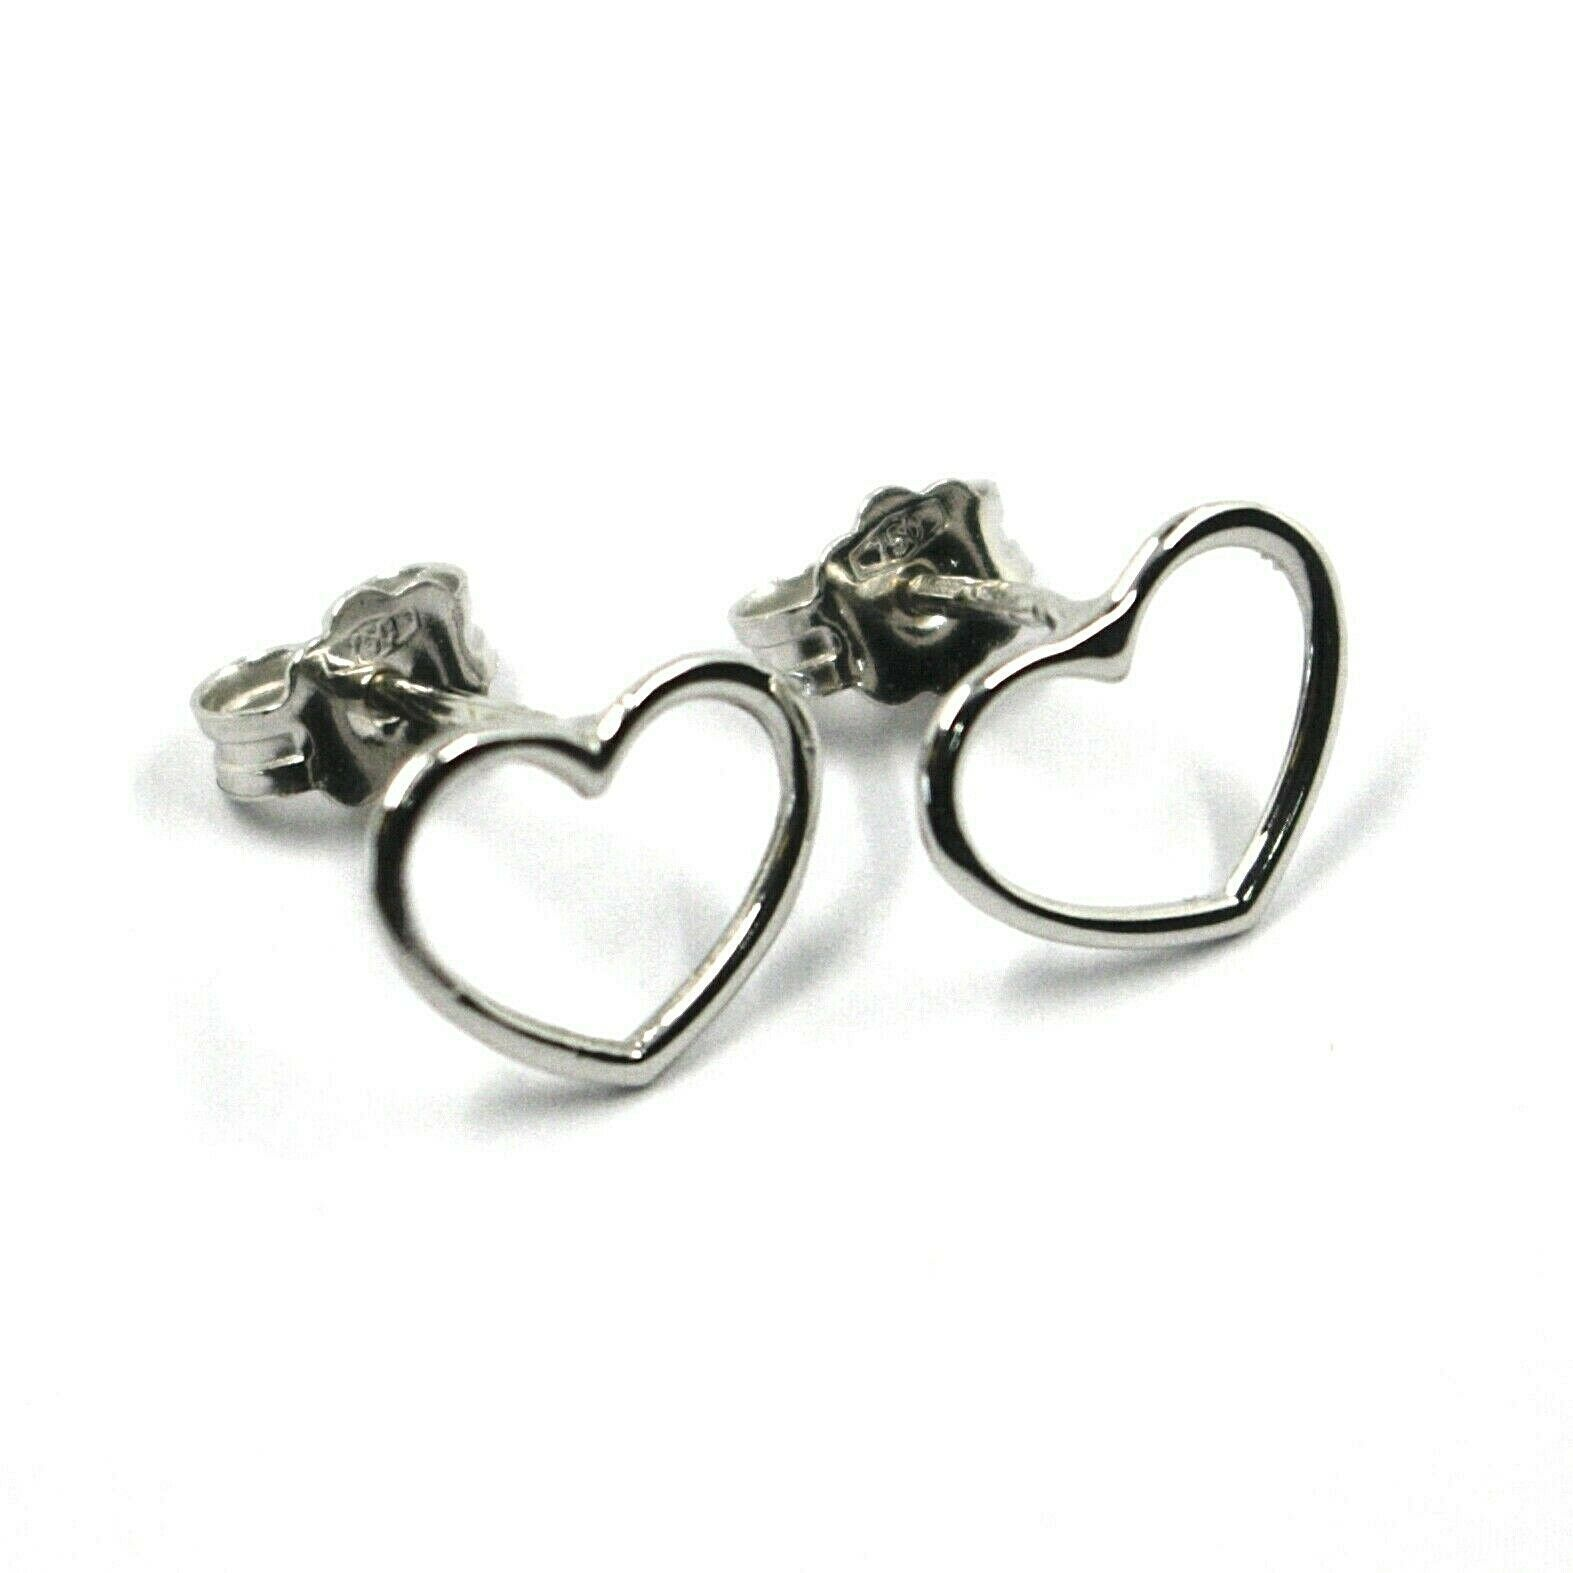 18K WHITE GOLD BUTTON EARRINGS, MINI 10mm HEARTS, BUTTERFLY CLOSURE